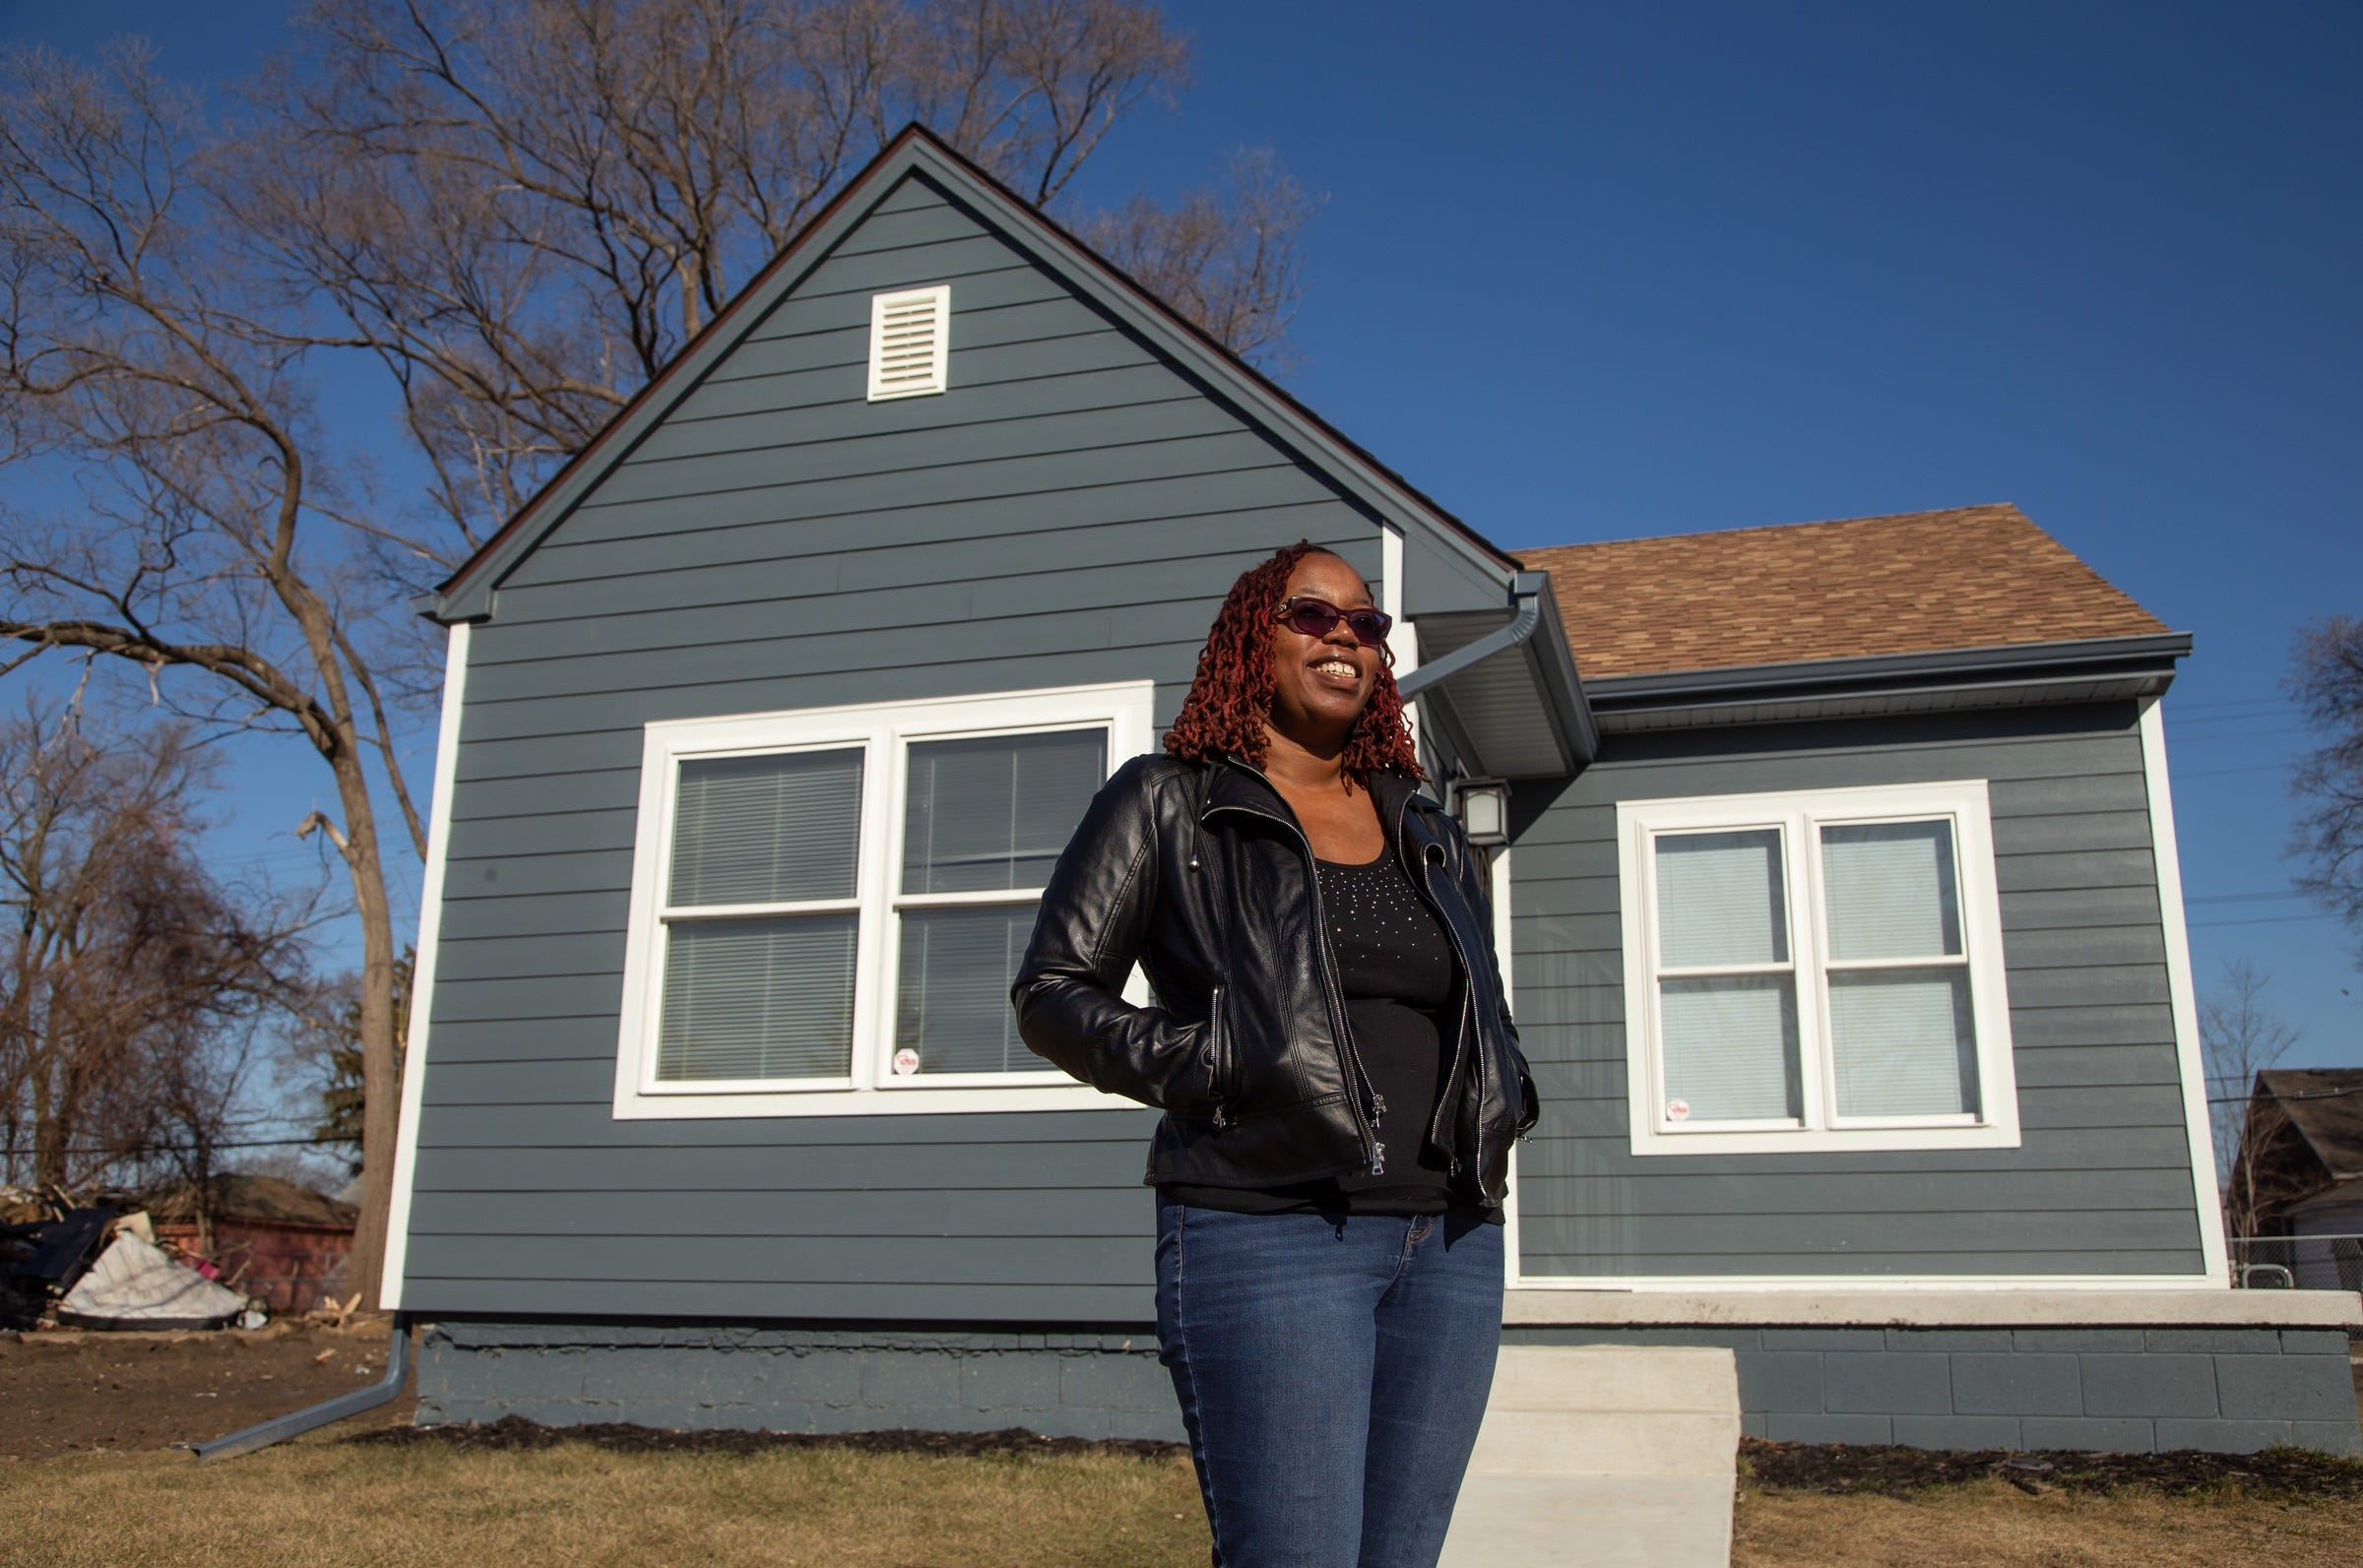 freep.com - John Gallagher, Detroit Free Press - Few black people get home mortgages in Detroit, data show